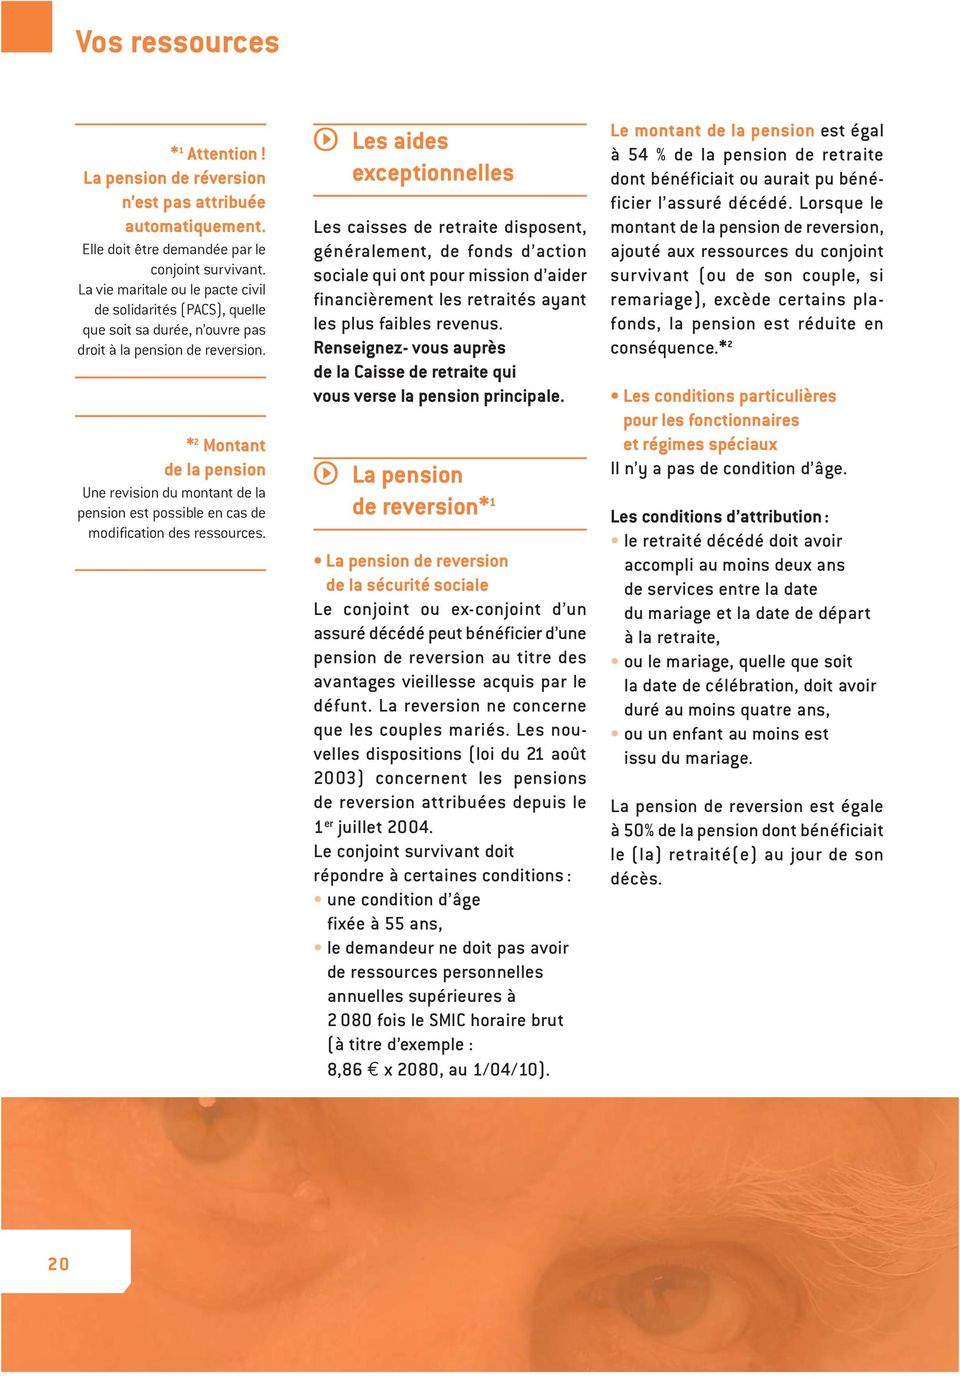 * 2 Montant de la pension Une revision du montant de la pension est possible en cas de modification des ressources.